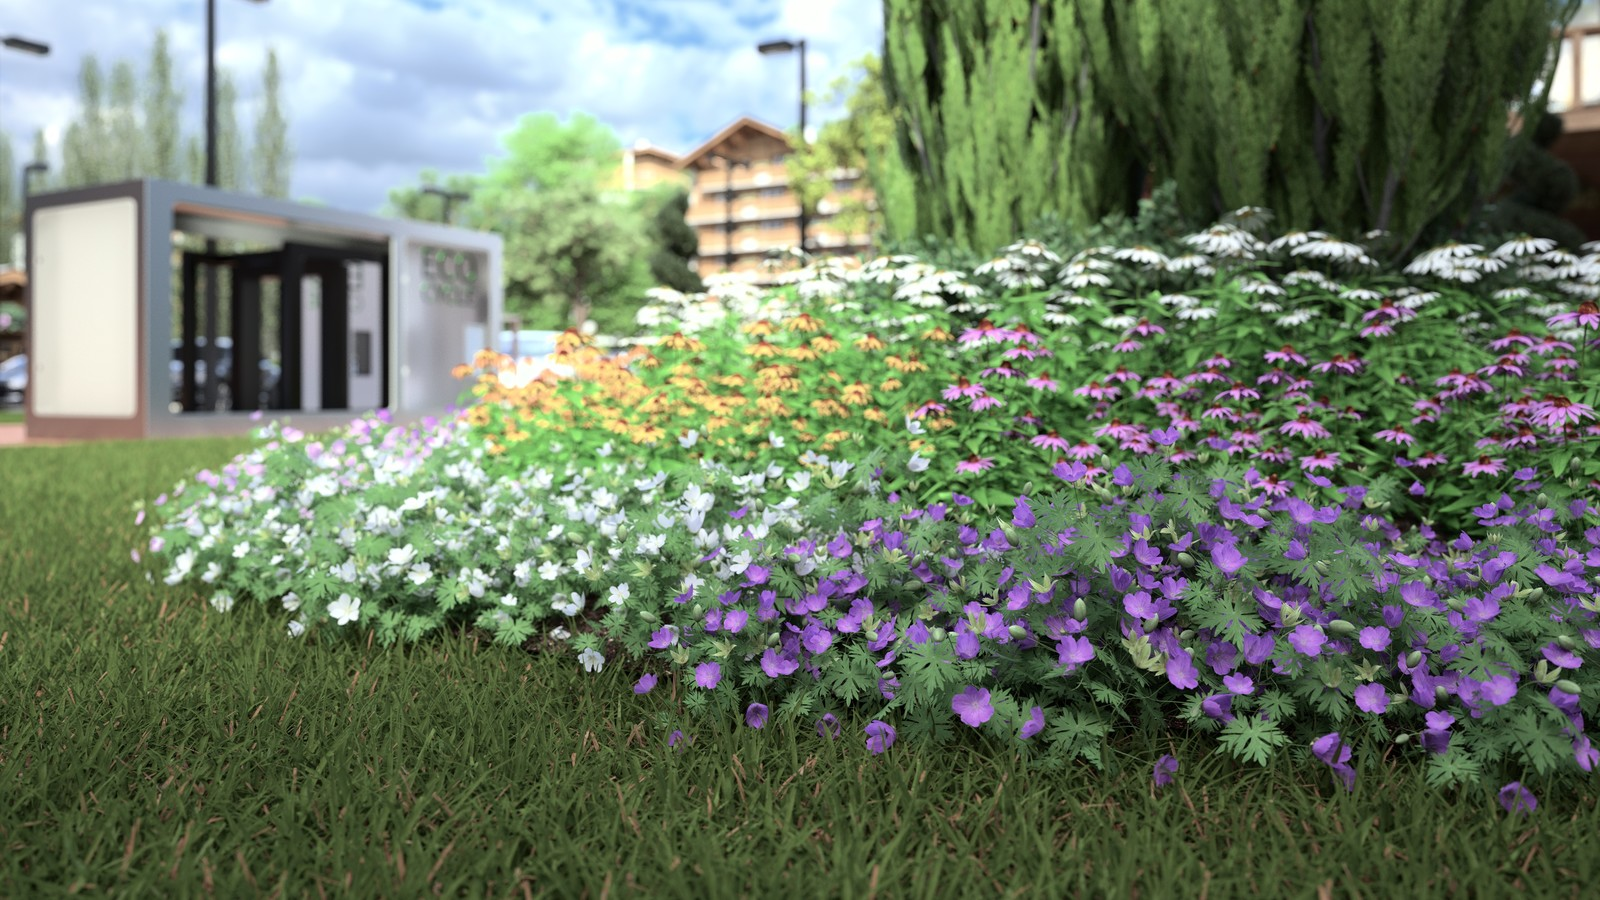 SketchUp 2018 + Thea Render V1.5 Ode to Vimage Visualisation Eco Cycle Alpine hotel v2018-Scene 92 PMC 1024 s-px 2840x2160 4h07 HDR241 FP2900ZG.crf C  HDR 241 by HDRI-SKIES: http://hdri-skies.com/shop/hdri-sky-241/